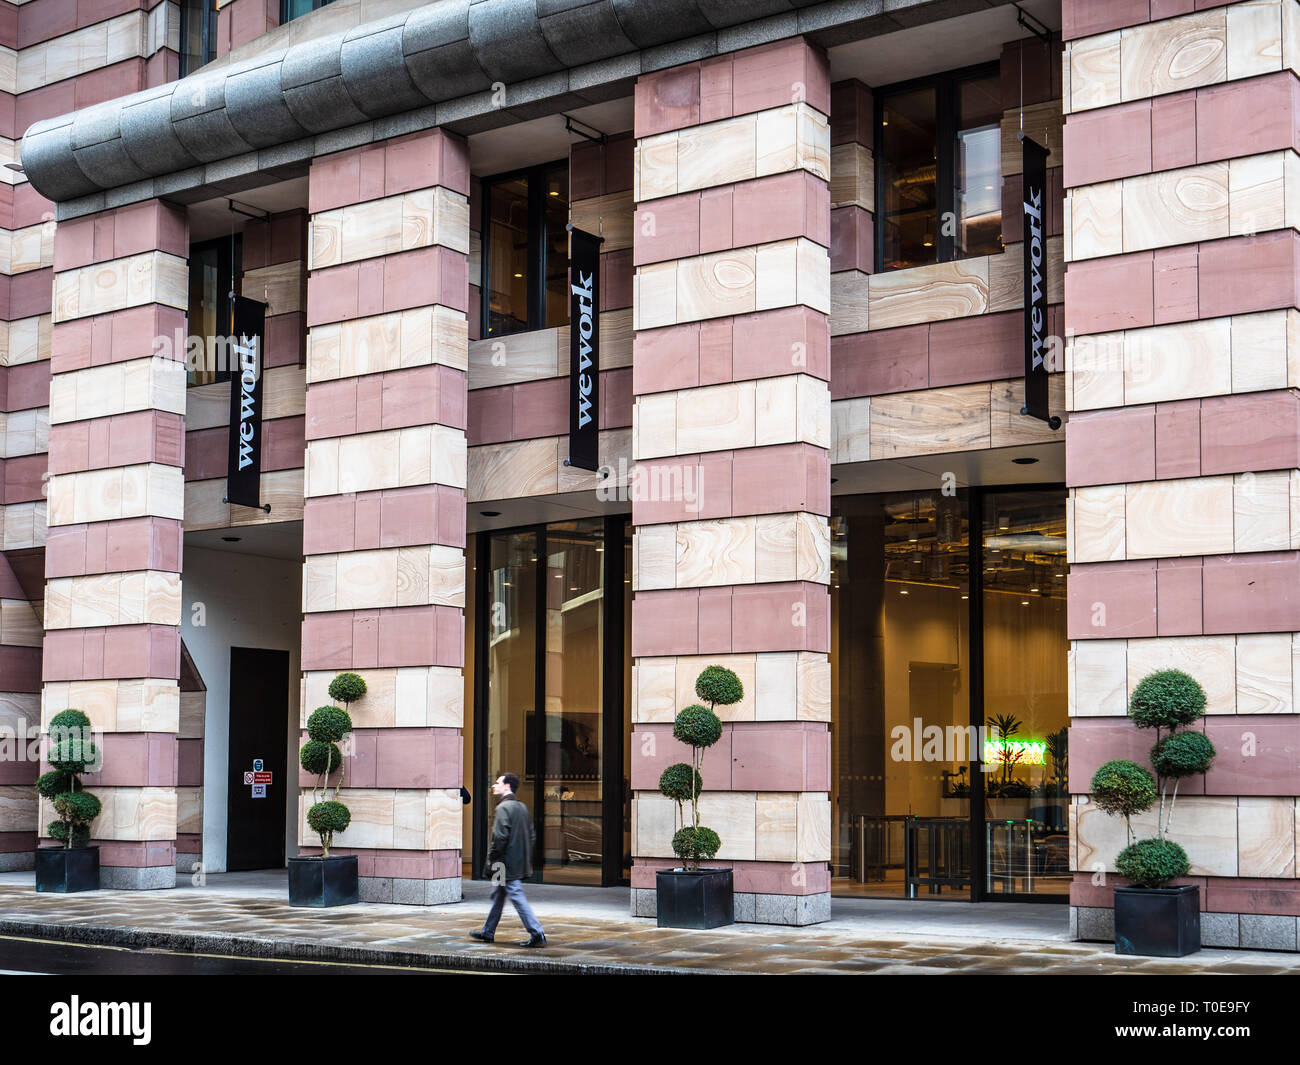 WeWork London - WeWork Coworking Space and Shared Office and Workspaces in the No1 Poultry Building in the City of London Financial District - Stock Image